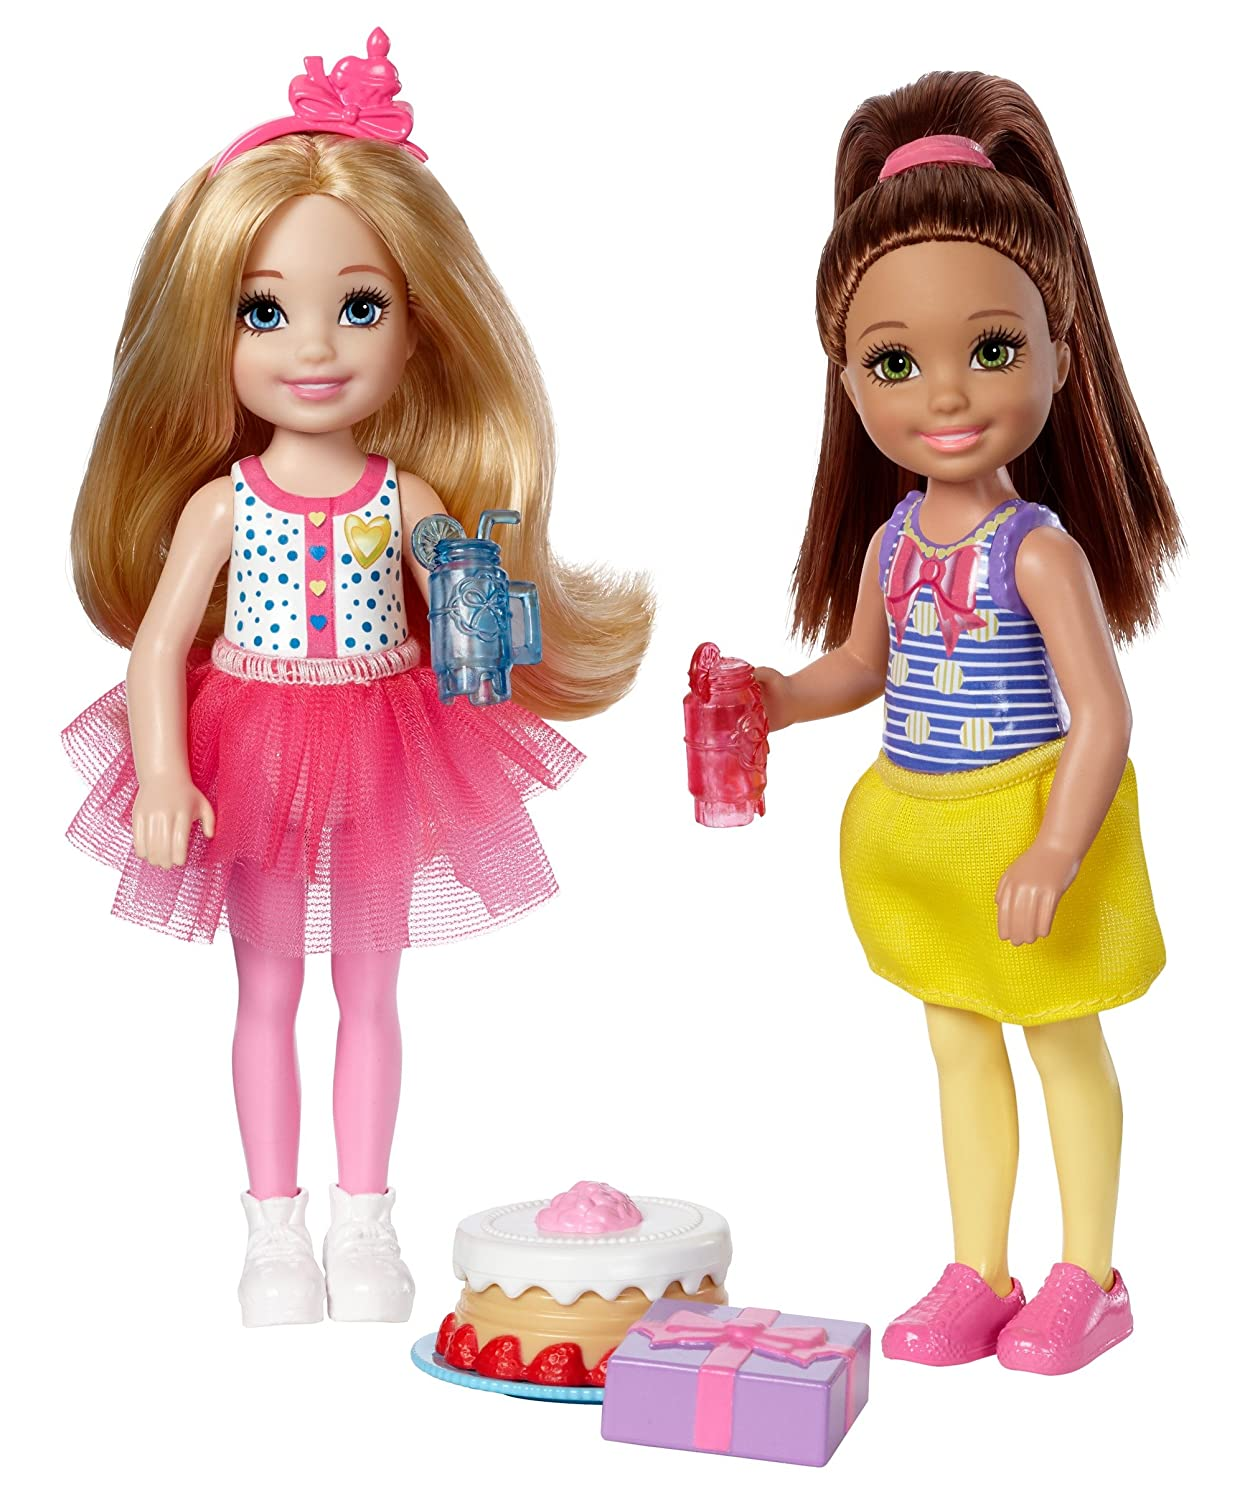 Barbie Club Chelsea Birthday Party Dolls & Accessories, 2 Pack Mattel DYL41